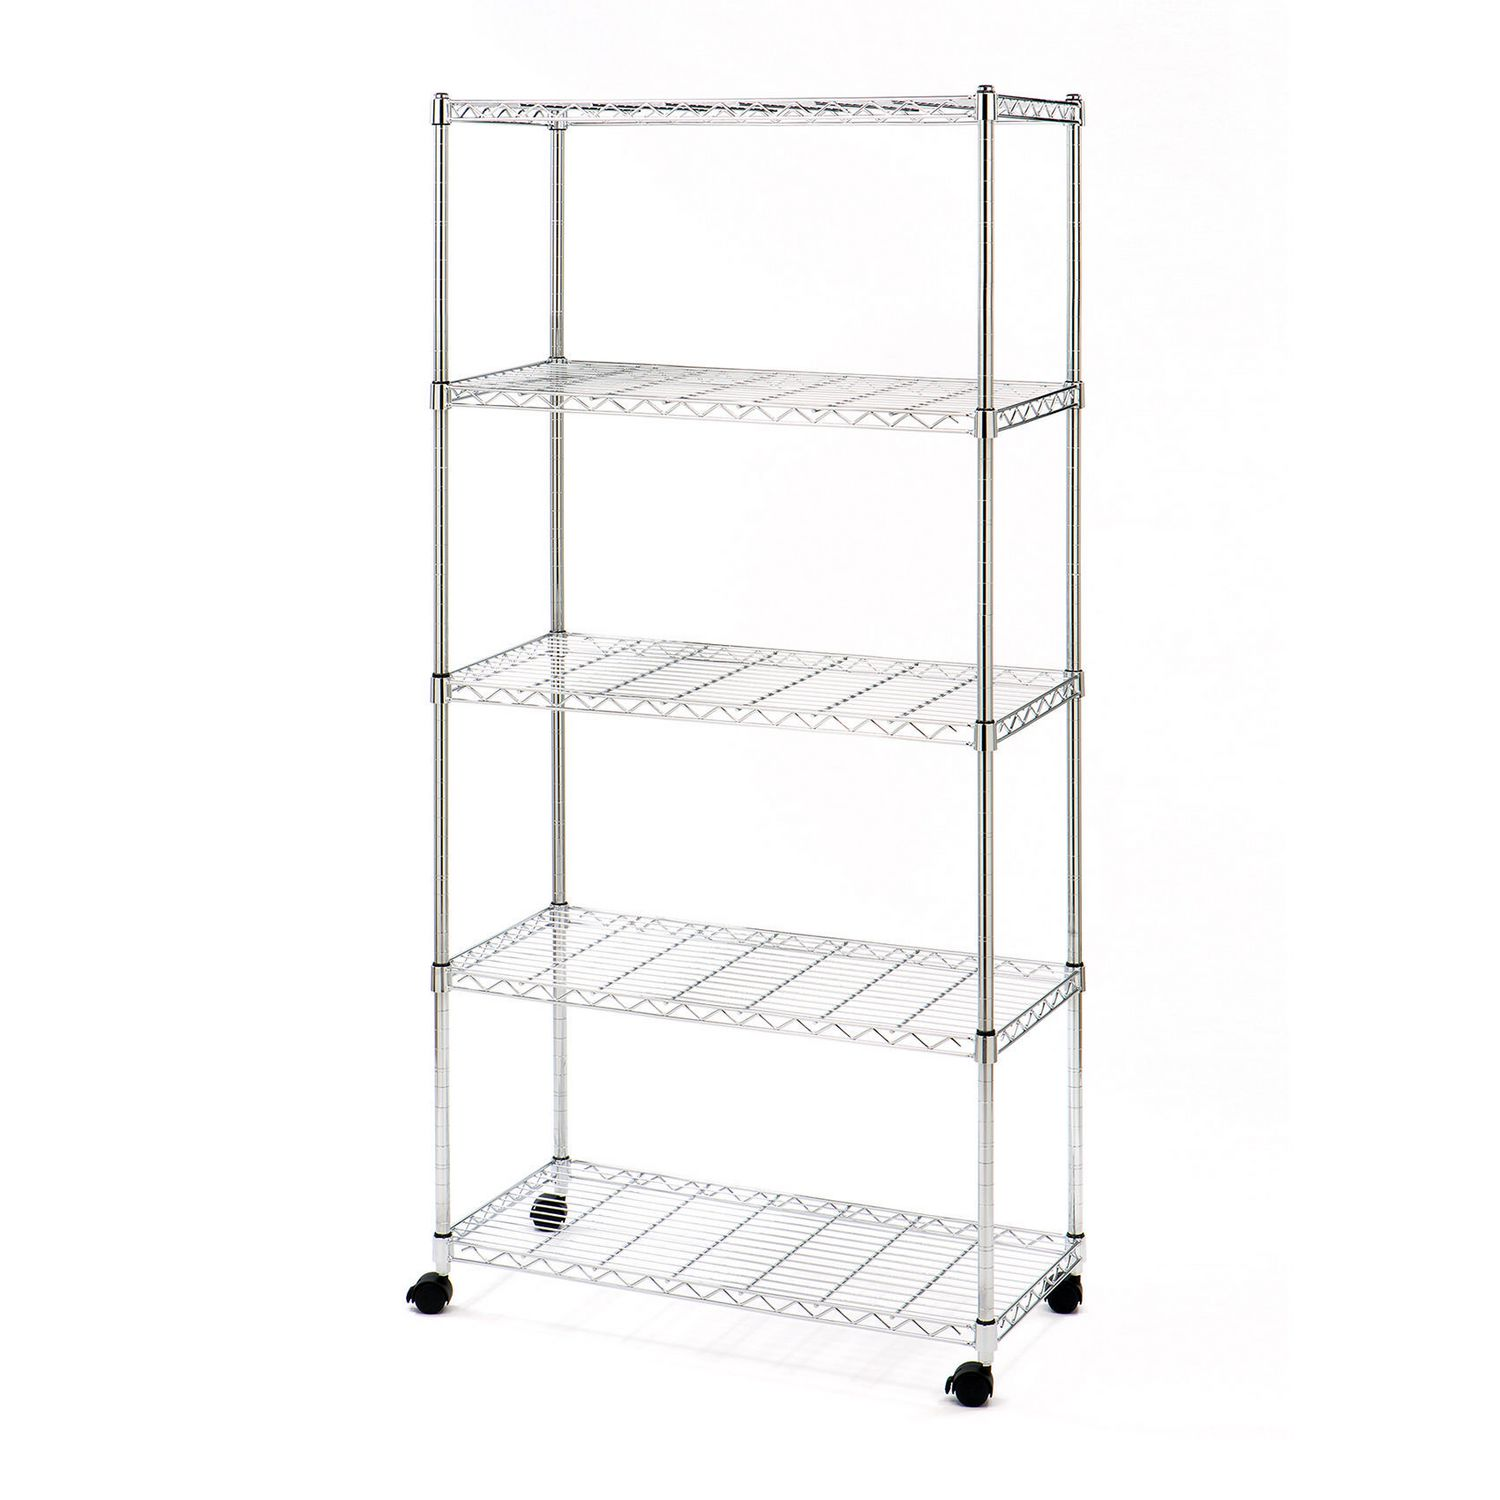 metal shelving home storage organization floating shelves canadian tire seville classics shelf systems iron bookshelf brackets deep white adhesive hooks for heavy tures ribba